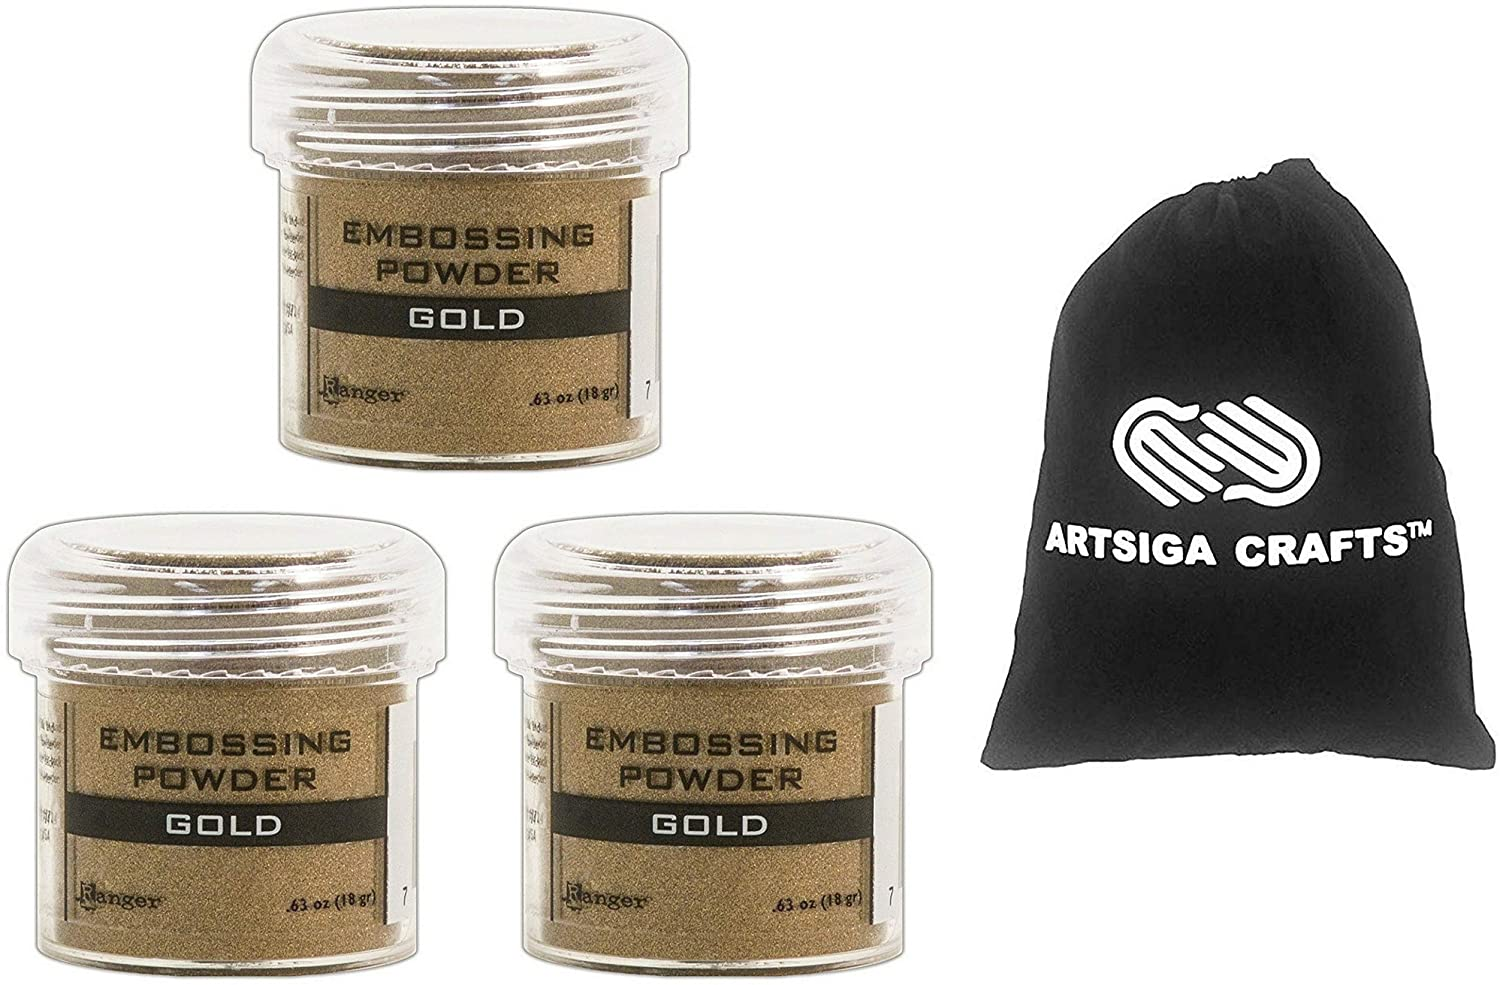 Ranger Ink Embossing Powder Gold 3-Pack Bundled with 1 Artsiga Crafts Small Project Bag